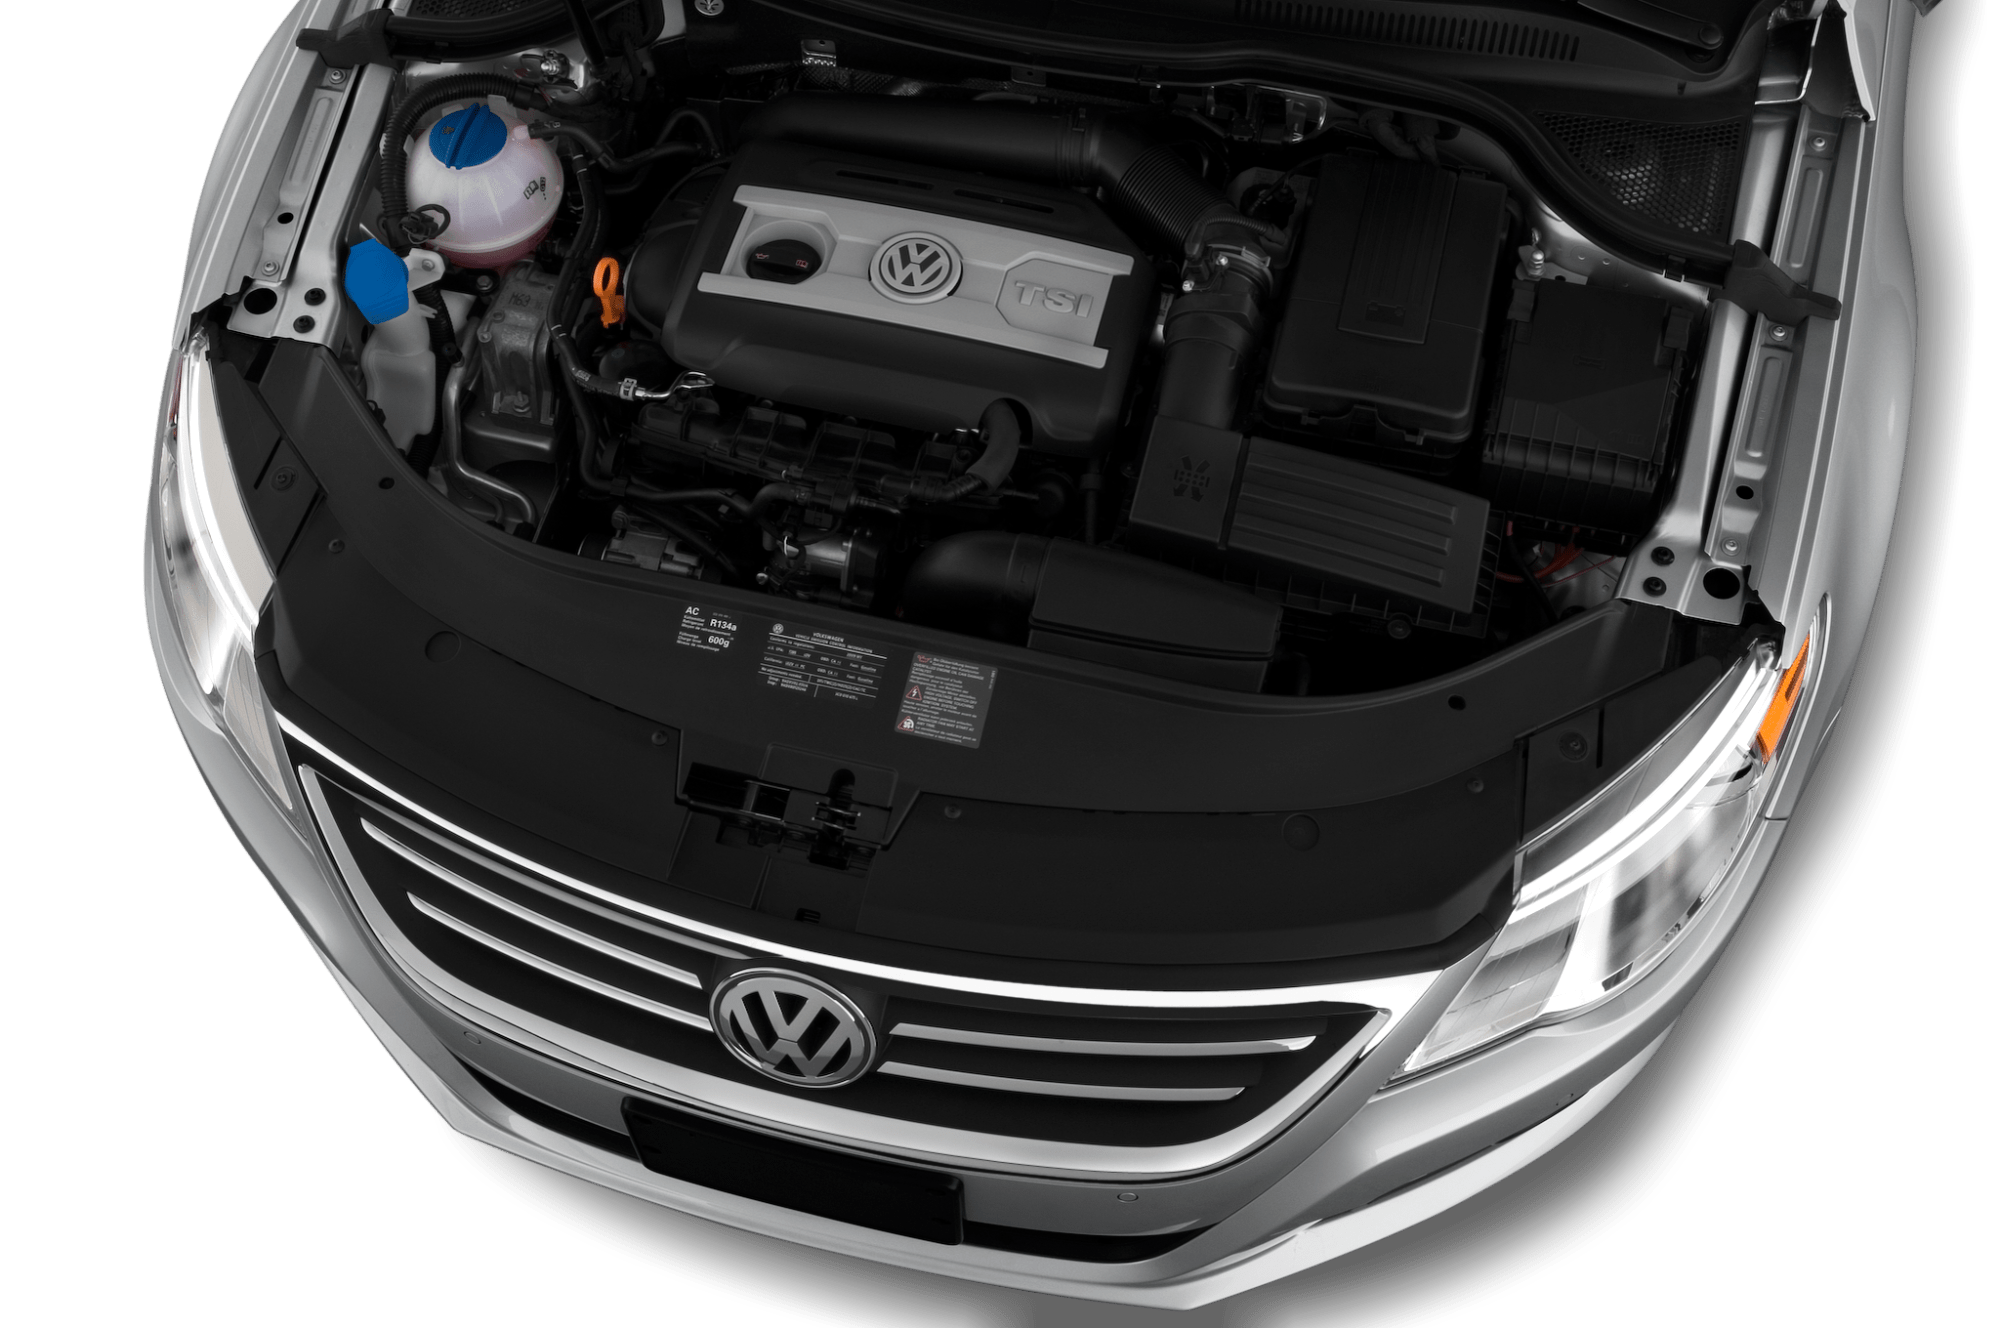 hight resolution of 2010 vw cc engine thestartupguide co u20222010 volkswagen cc sport editors notebook reviews automobile rh